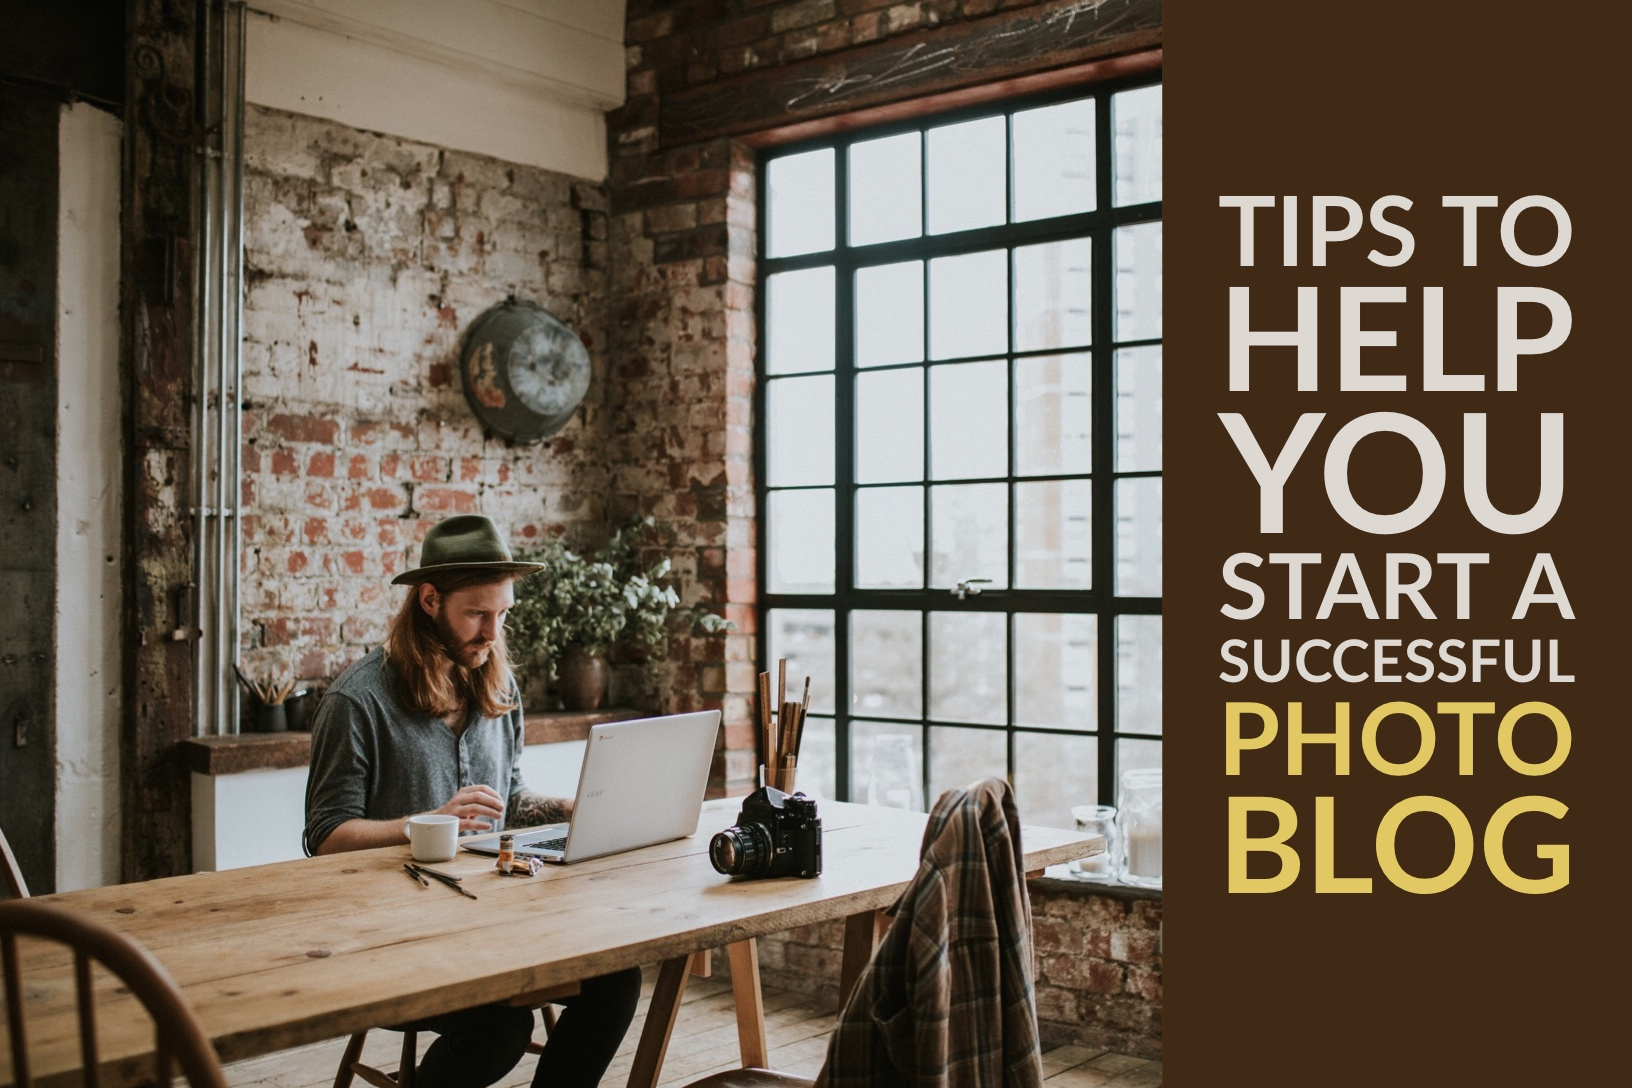 Tips to Help You Start a Successful Photo Blog